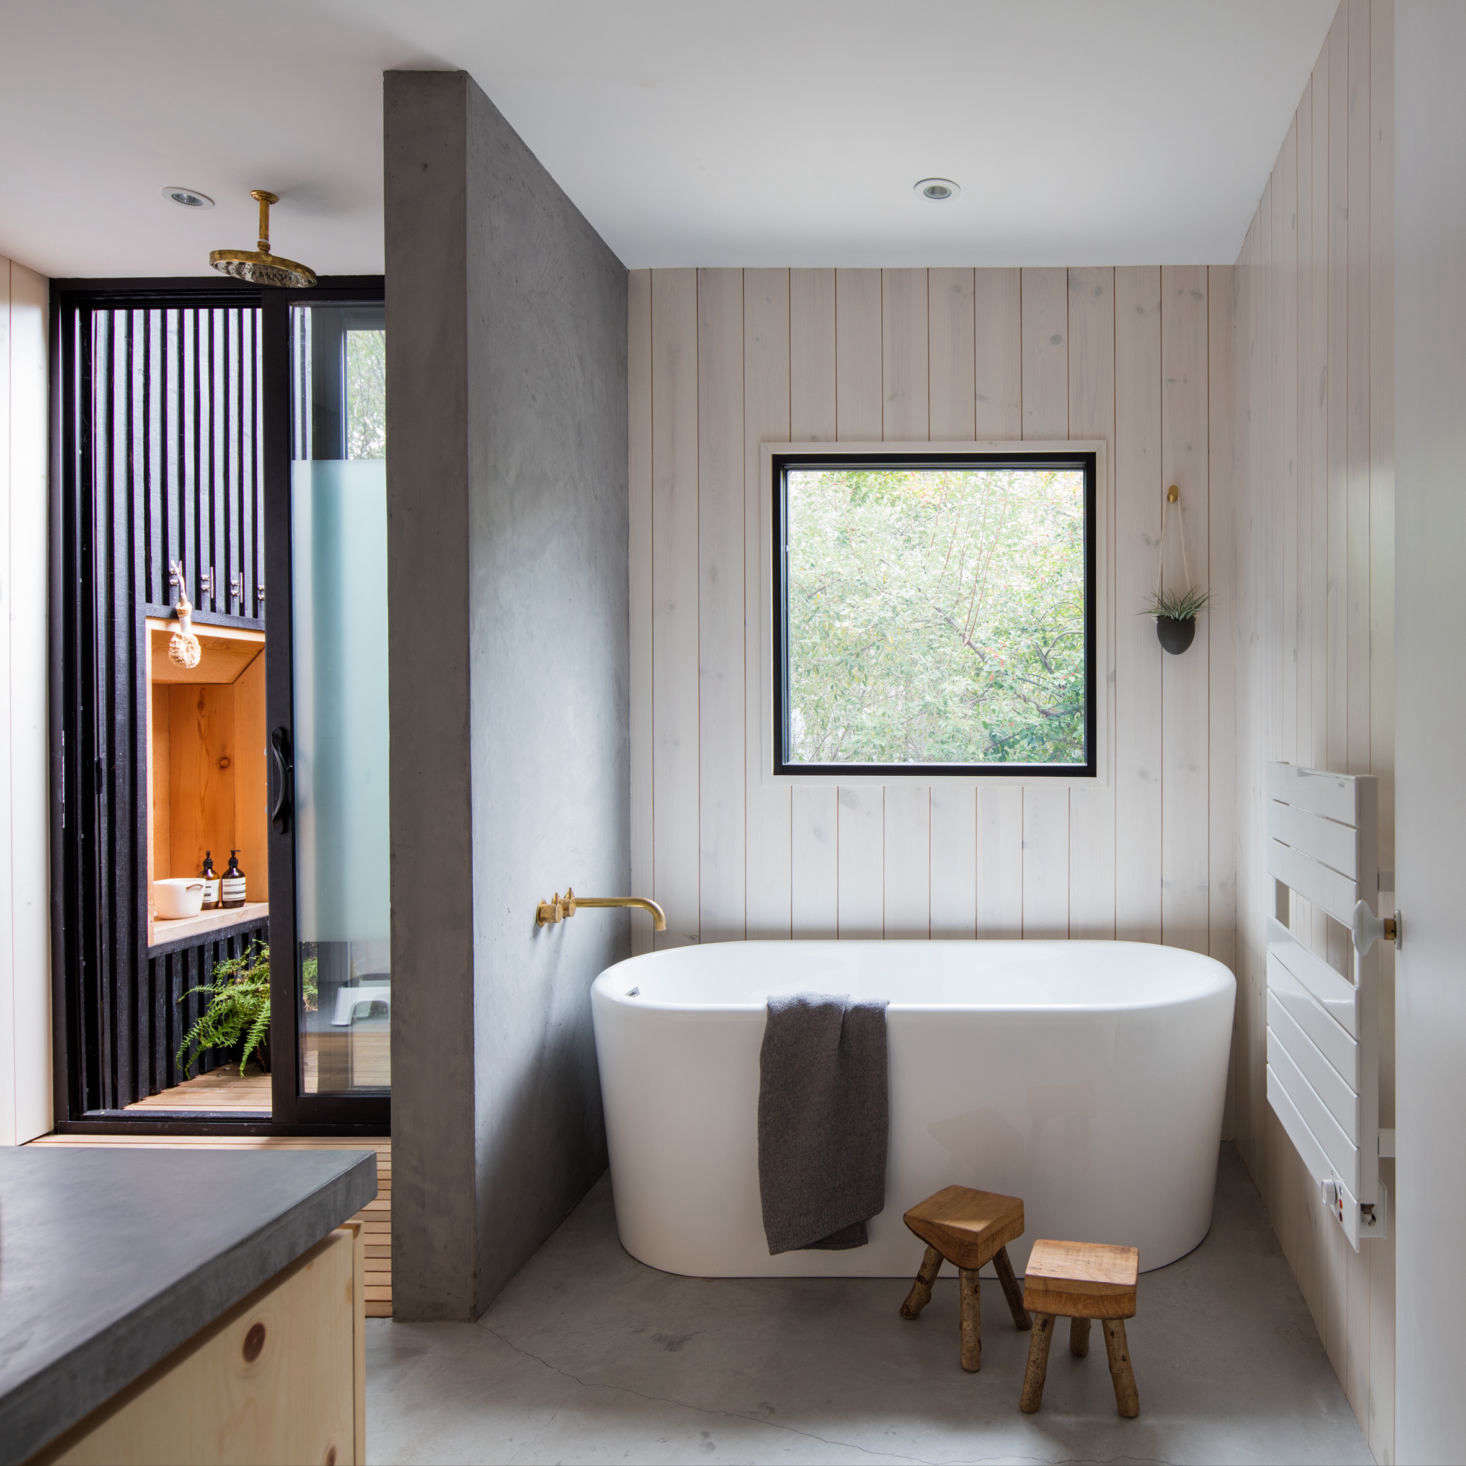 A wall of rendered concrete plaster splits the shower from the bathtub. The concrete floors have radiant underfloor heating, and a towel warmer hangs on the wall by the bath.